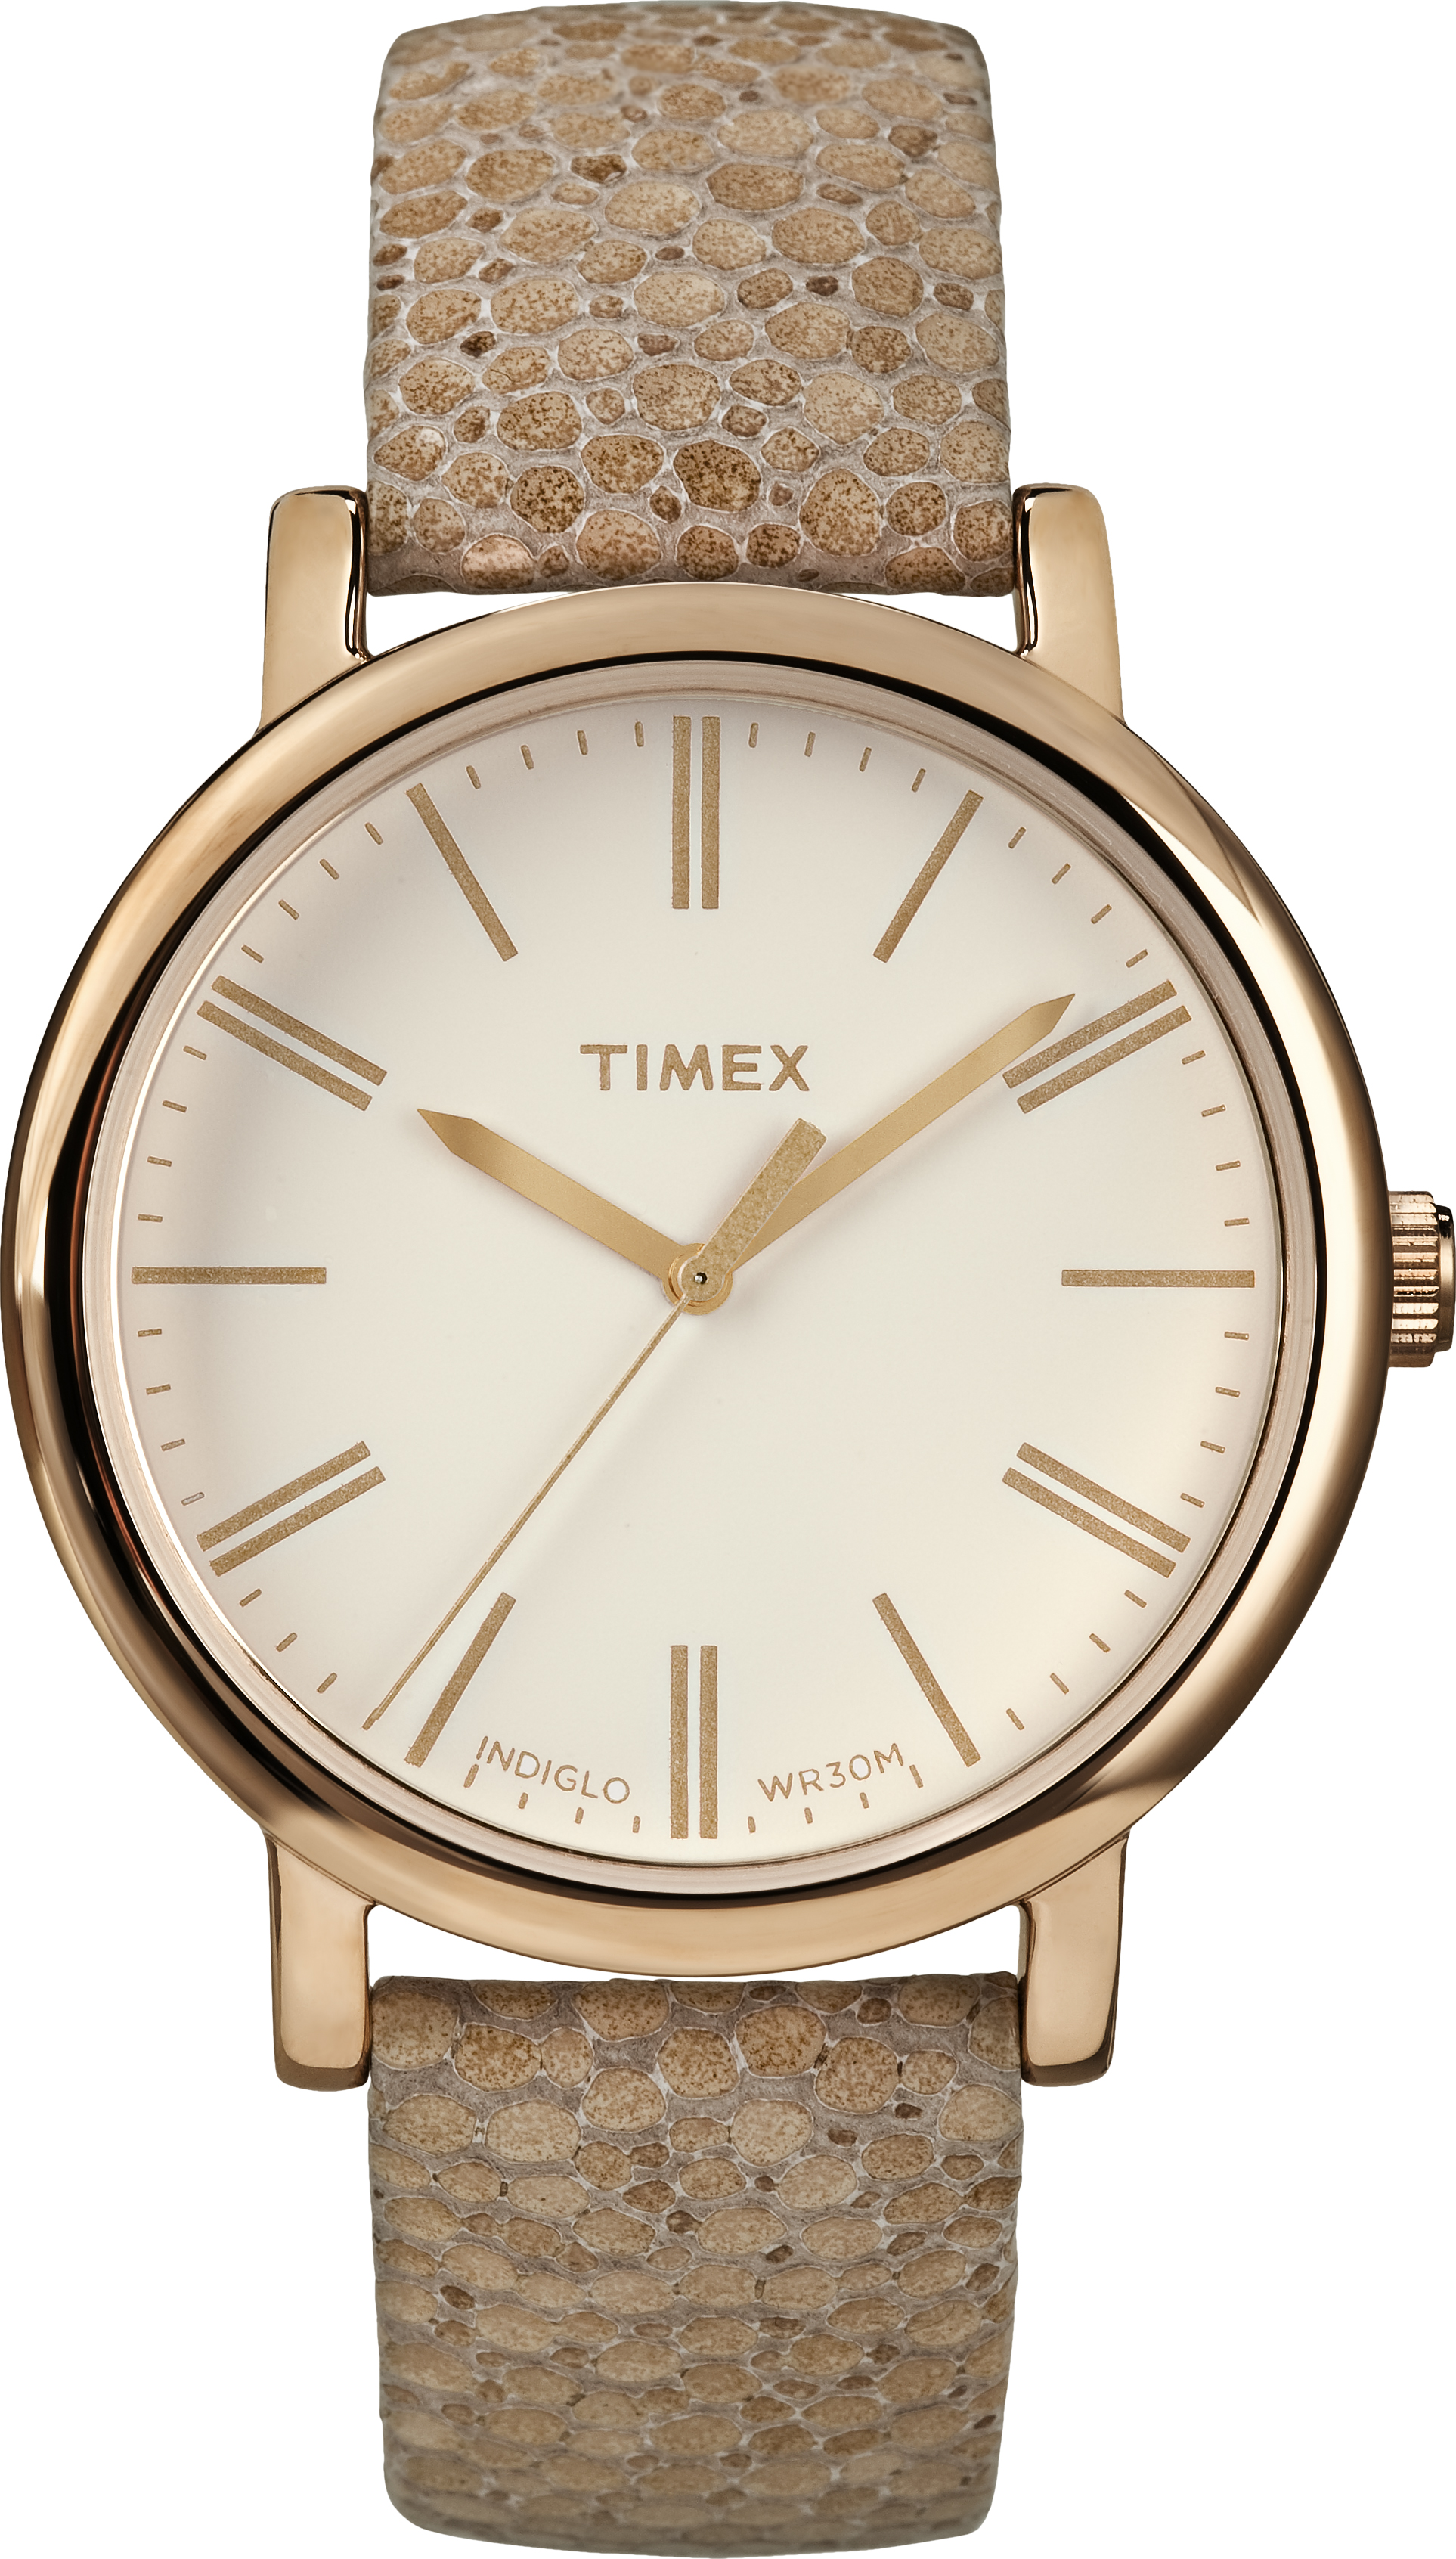 Timex T2P325 Unisex Brown Leather Bracelet With Cream Analog Dial Watch NWT by Timex